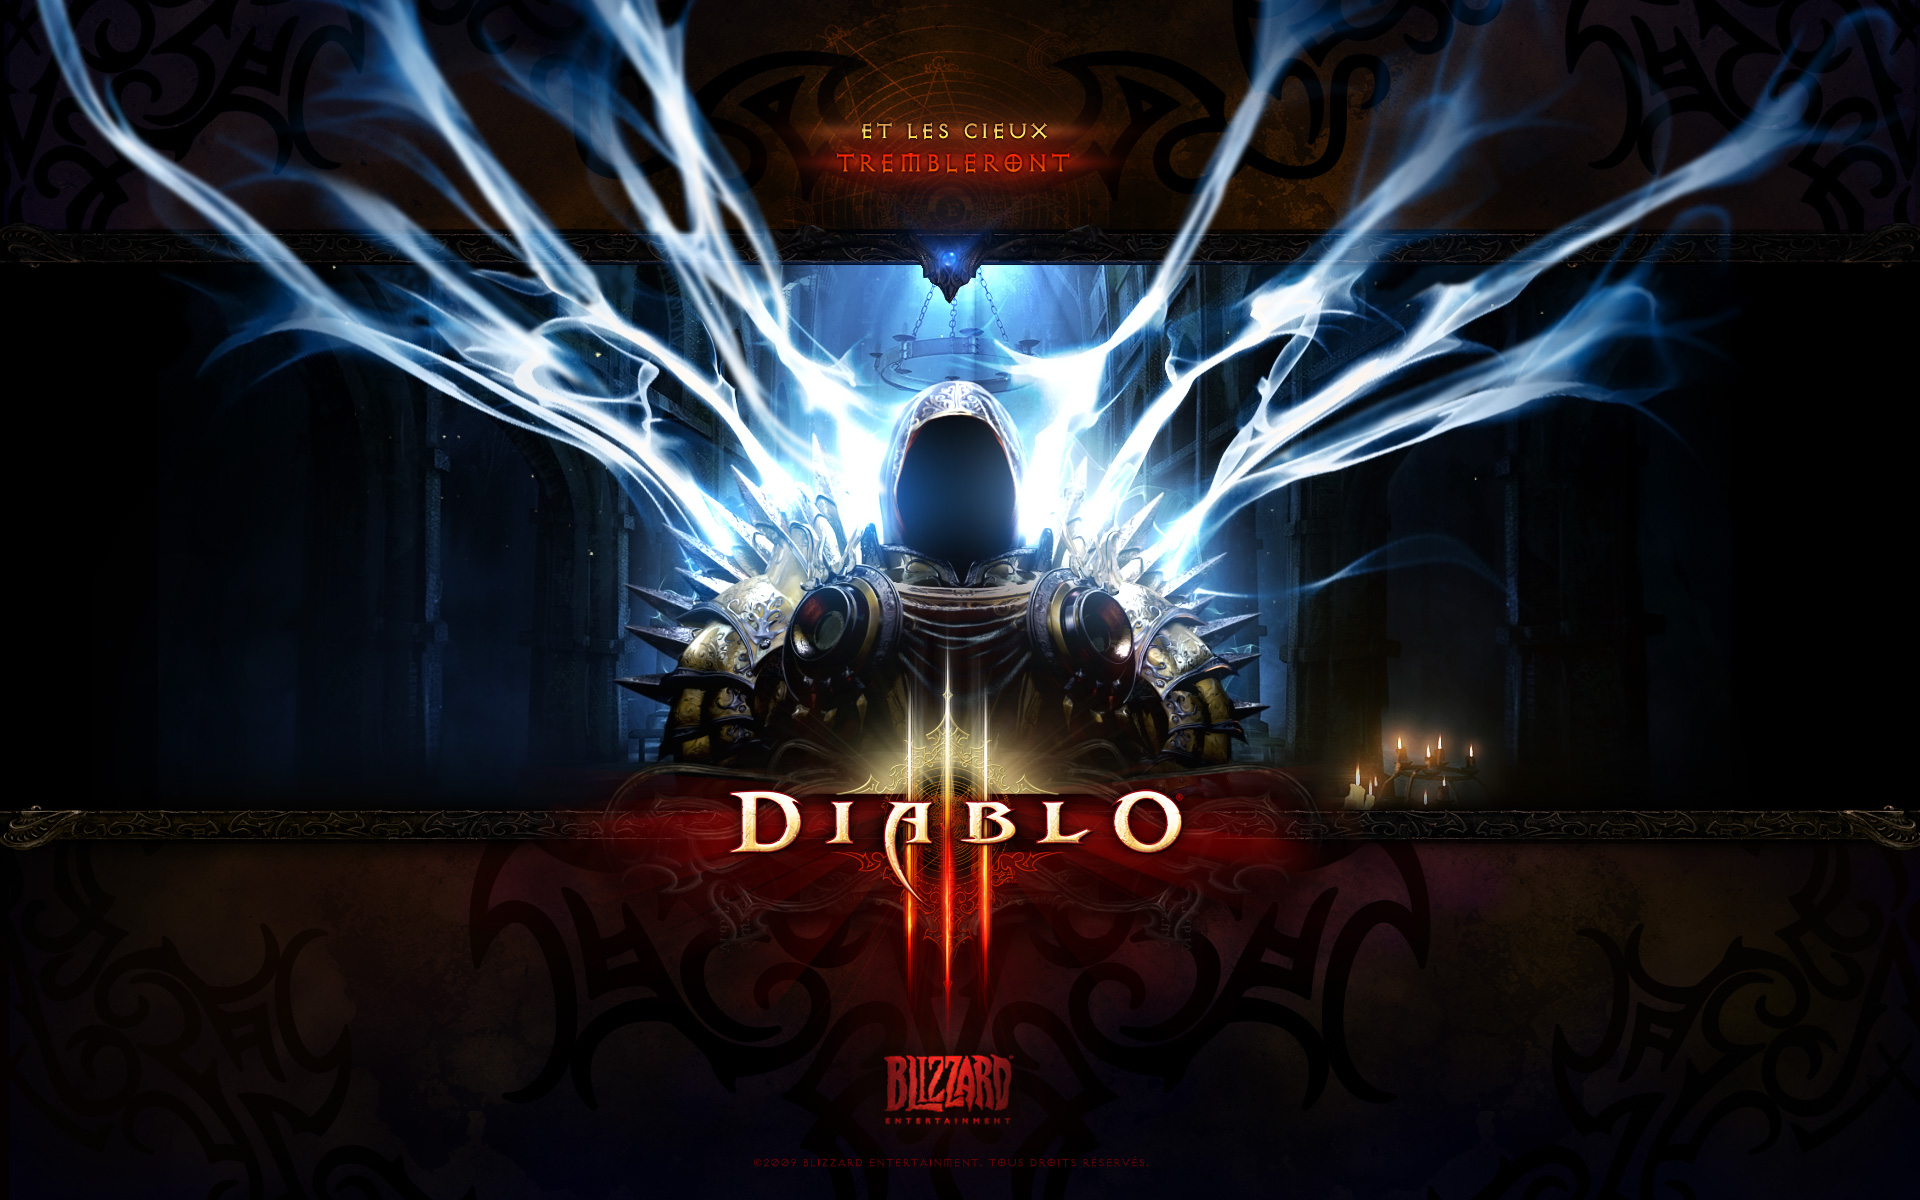 Wallpaper Diablo 3 Tyrael Jeux video